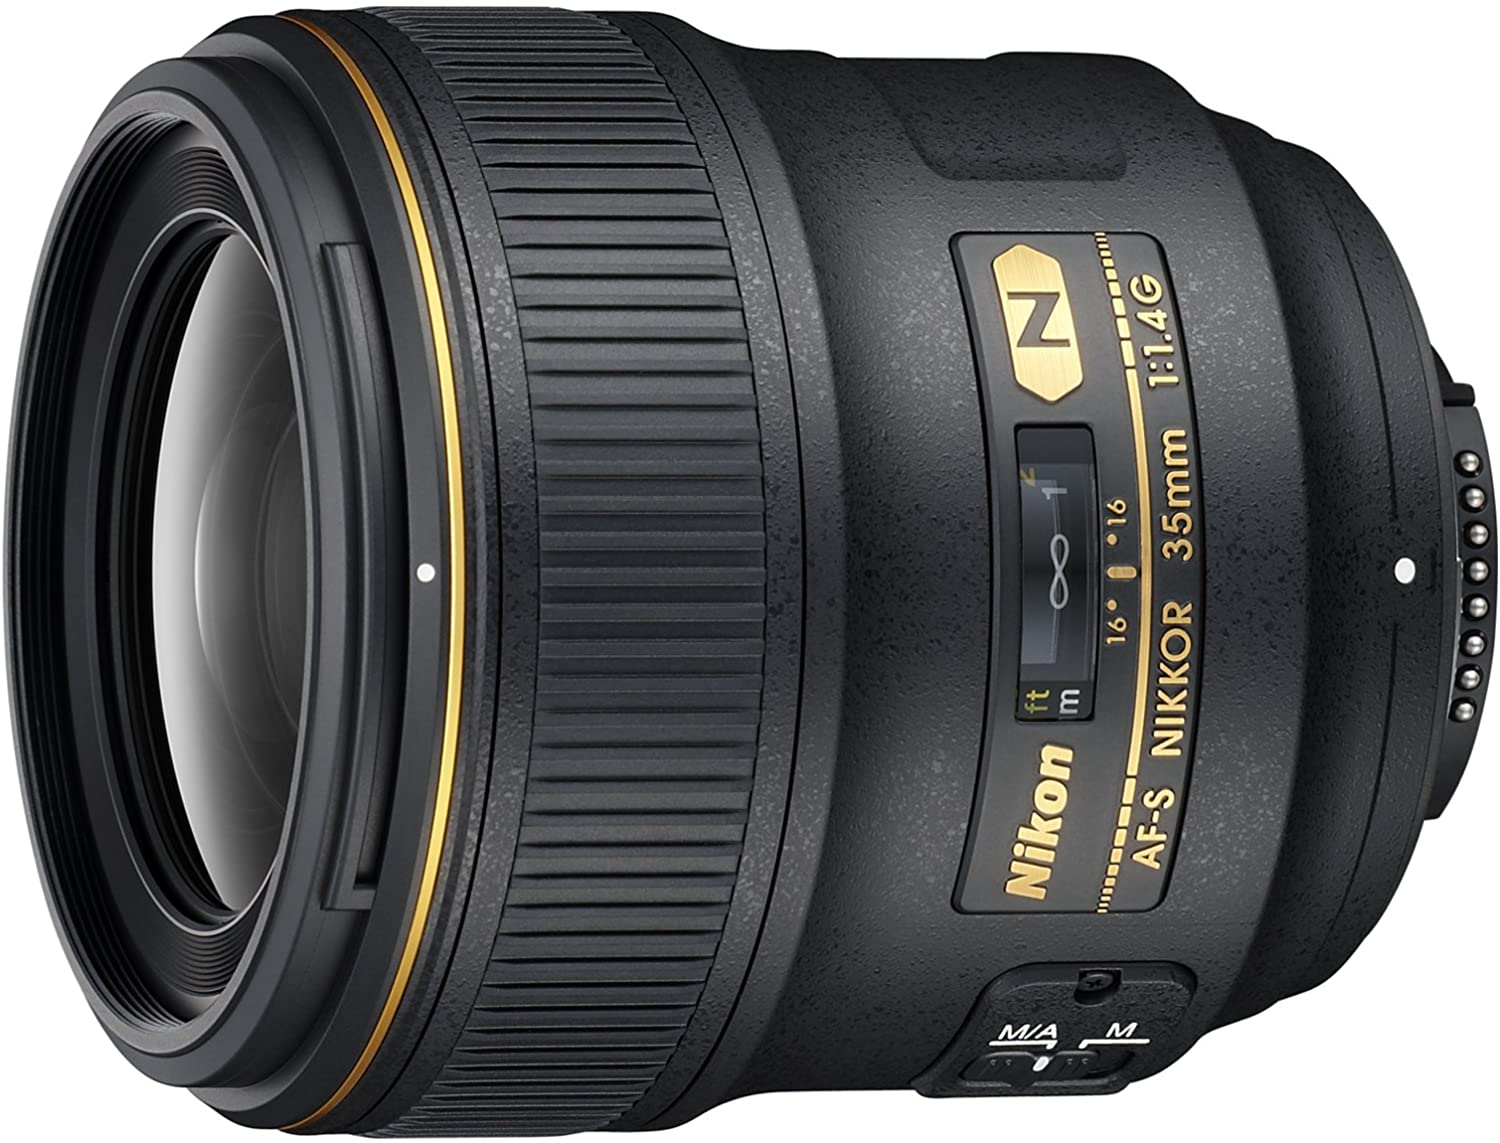 Nikon AF-S FX NIKKOR 50mm f//1.4G Lens with Auto Focus for Nikon DSLR Cameras